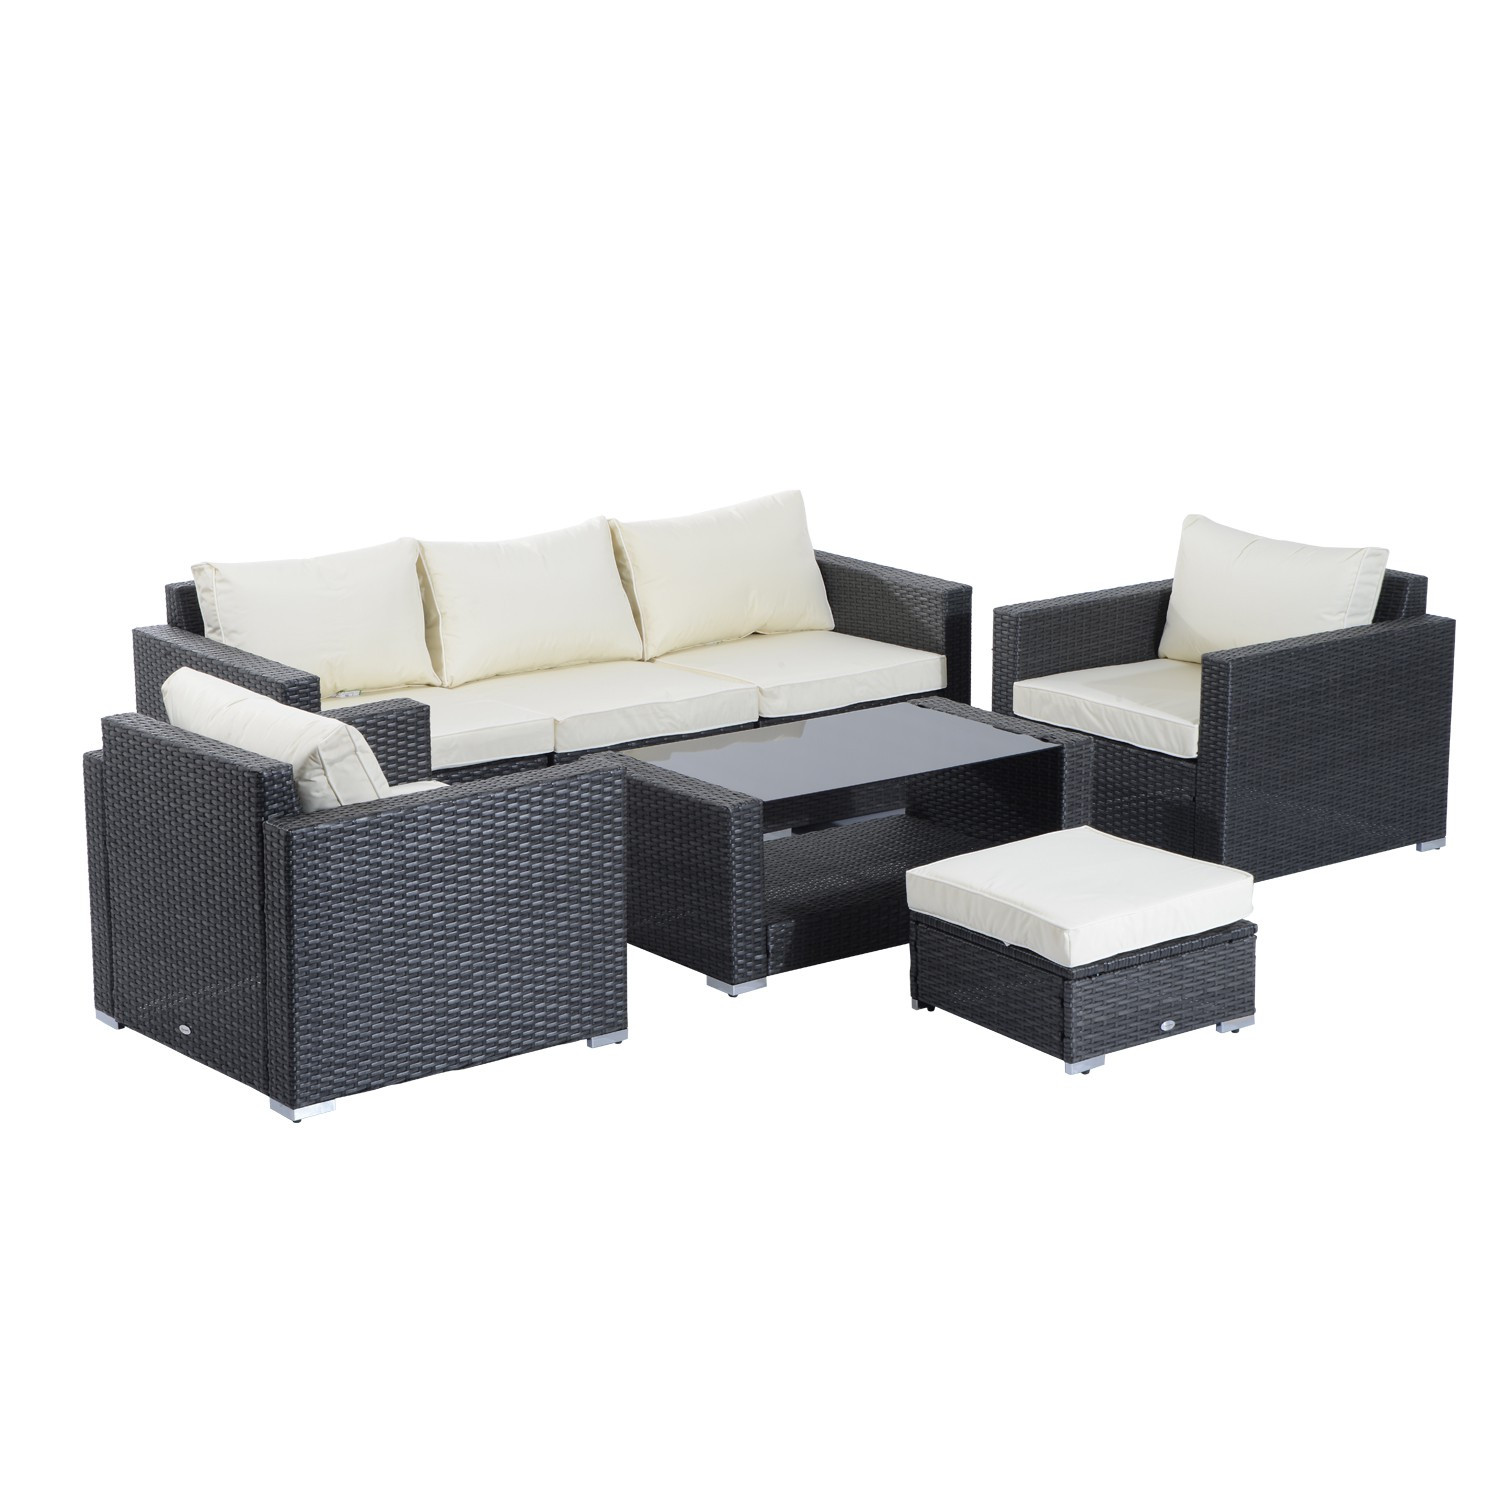 Best ideas about Outsunny Patio Furniture . Save or Pin Outsunny 7pcs outdoor rattan patio furniture set Now.